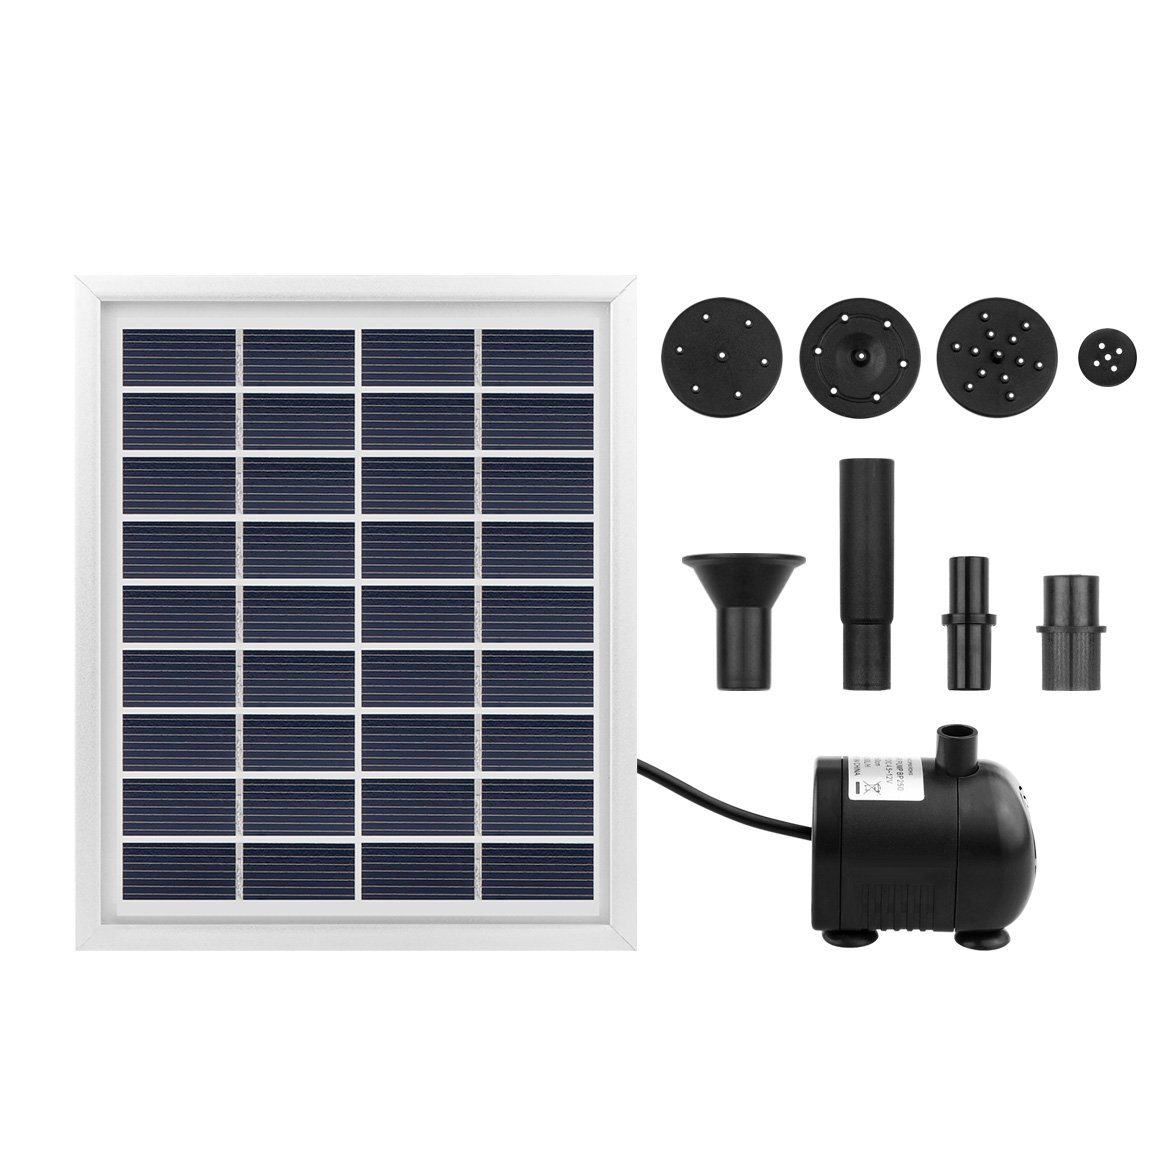 Solar Fountain Solar Power Water Pump Solar Panel Power Submersible Fountain Pond Water Pump Kit 55cm Height for Garden Plants Pool Pond 2W ALLOMN